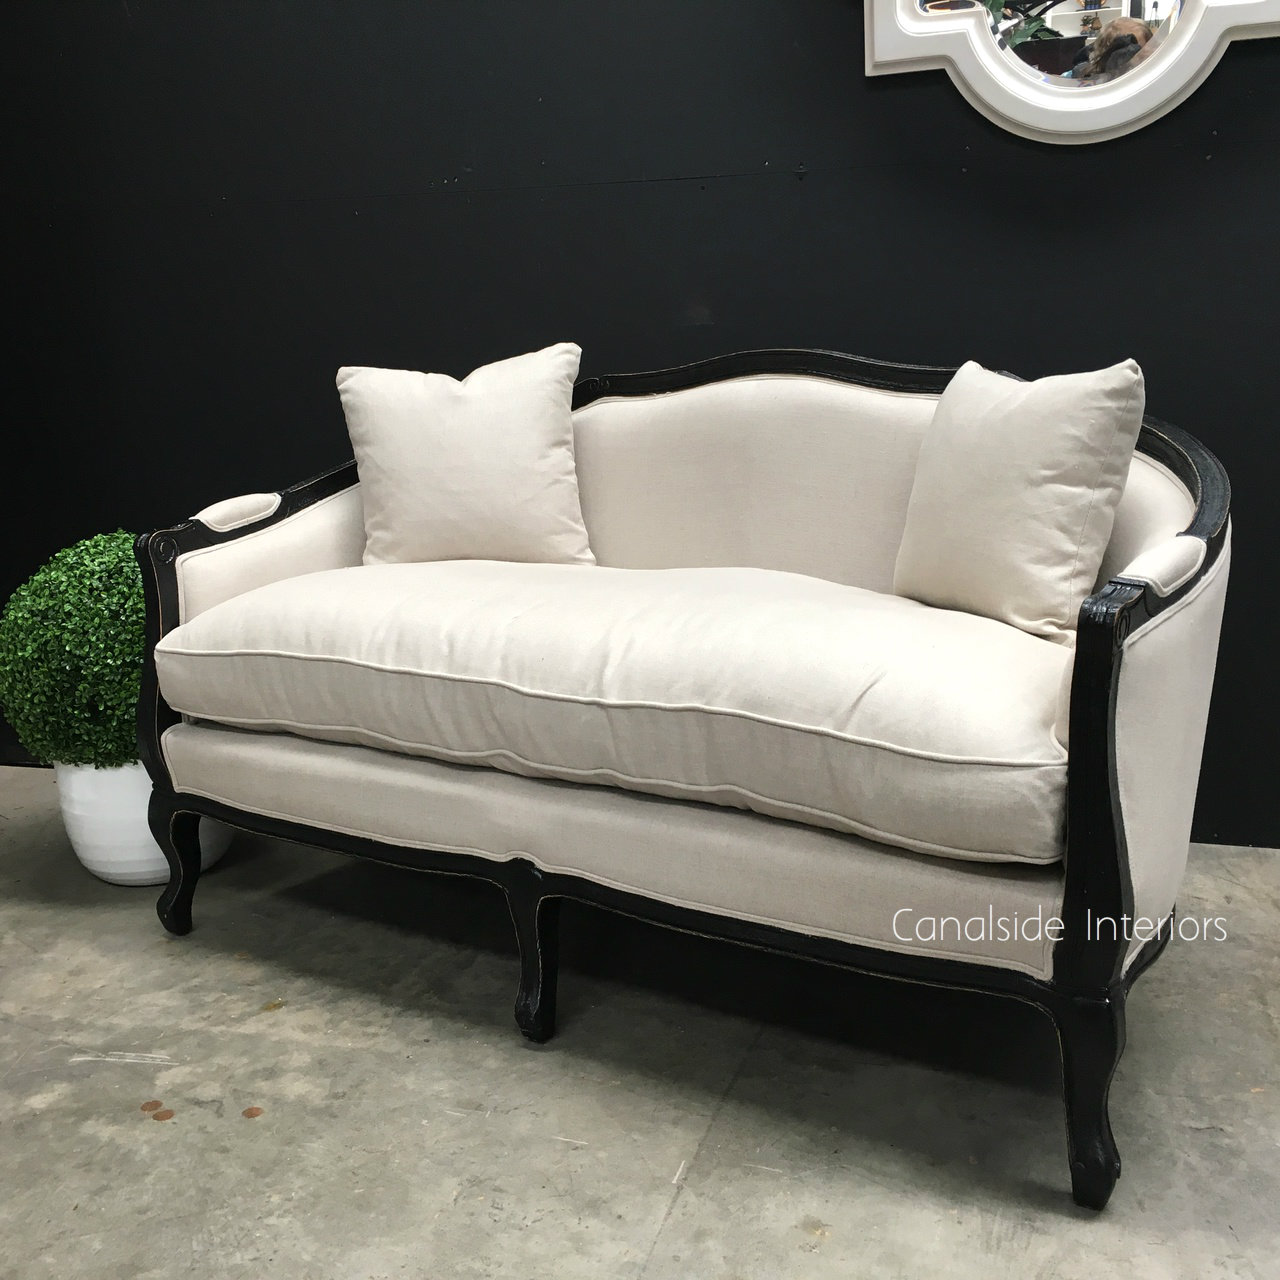 Arya 2.5 Seater Canape Sofa Distressed Black with cream upholstery  FRENCH  FURNITURE, CHAIRS, HAMPTONS Style, PLANTATION Style, CHAIRS Lounge, LIVING Room, LIVING Chairs